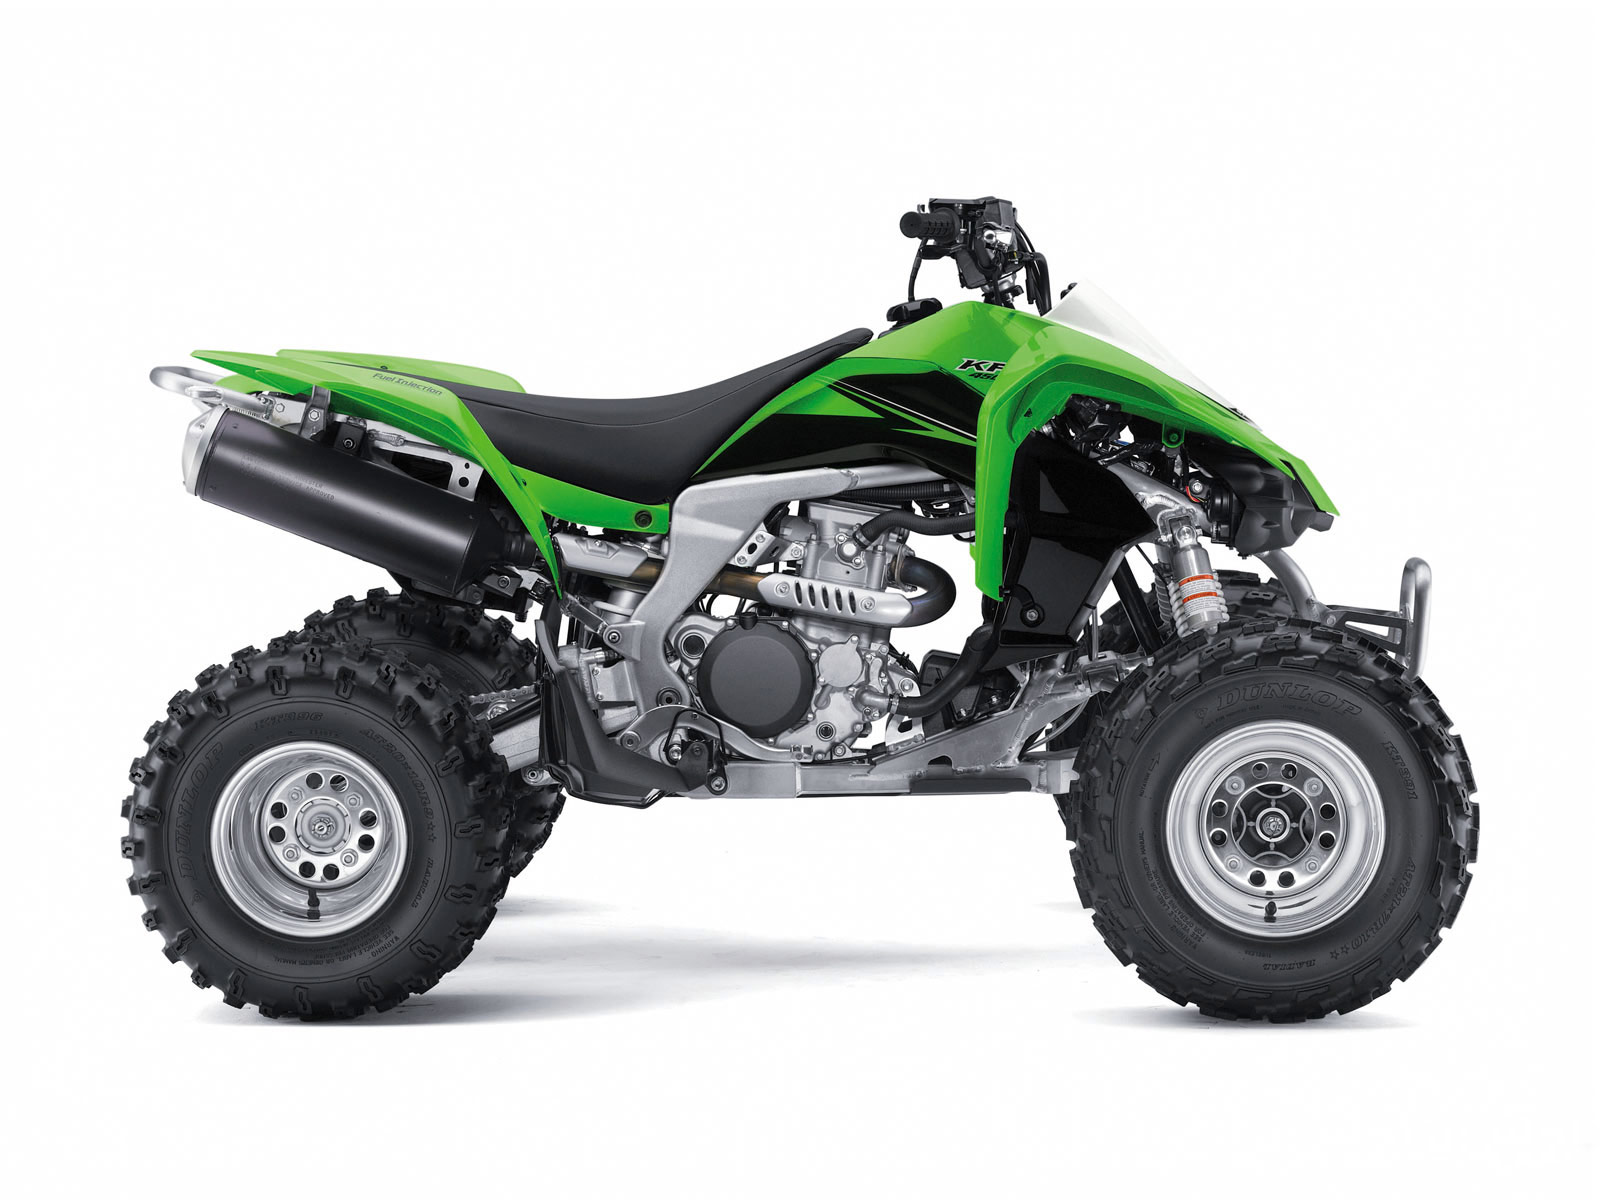 kawasaki accident lawyers 2010 kfx 450r pictures specs [ 1600 x 1200 Pixel ]